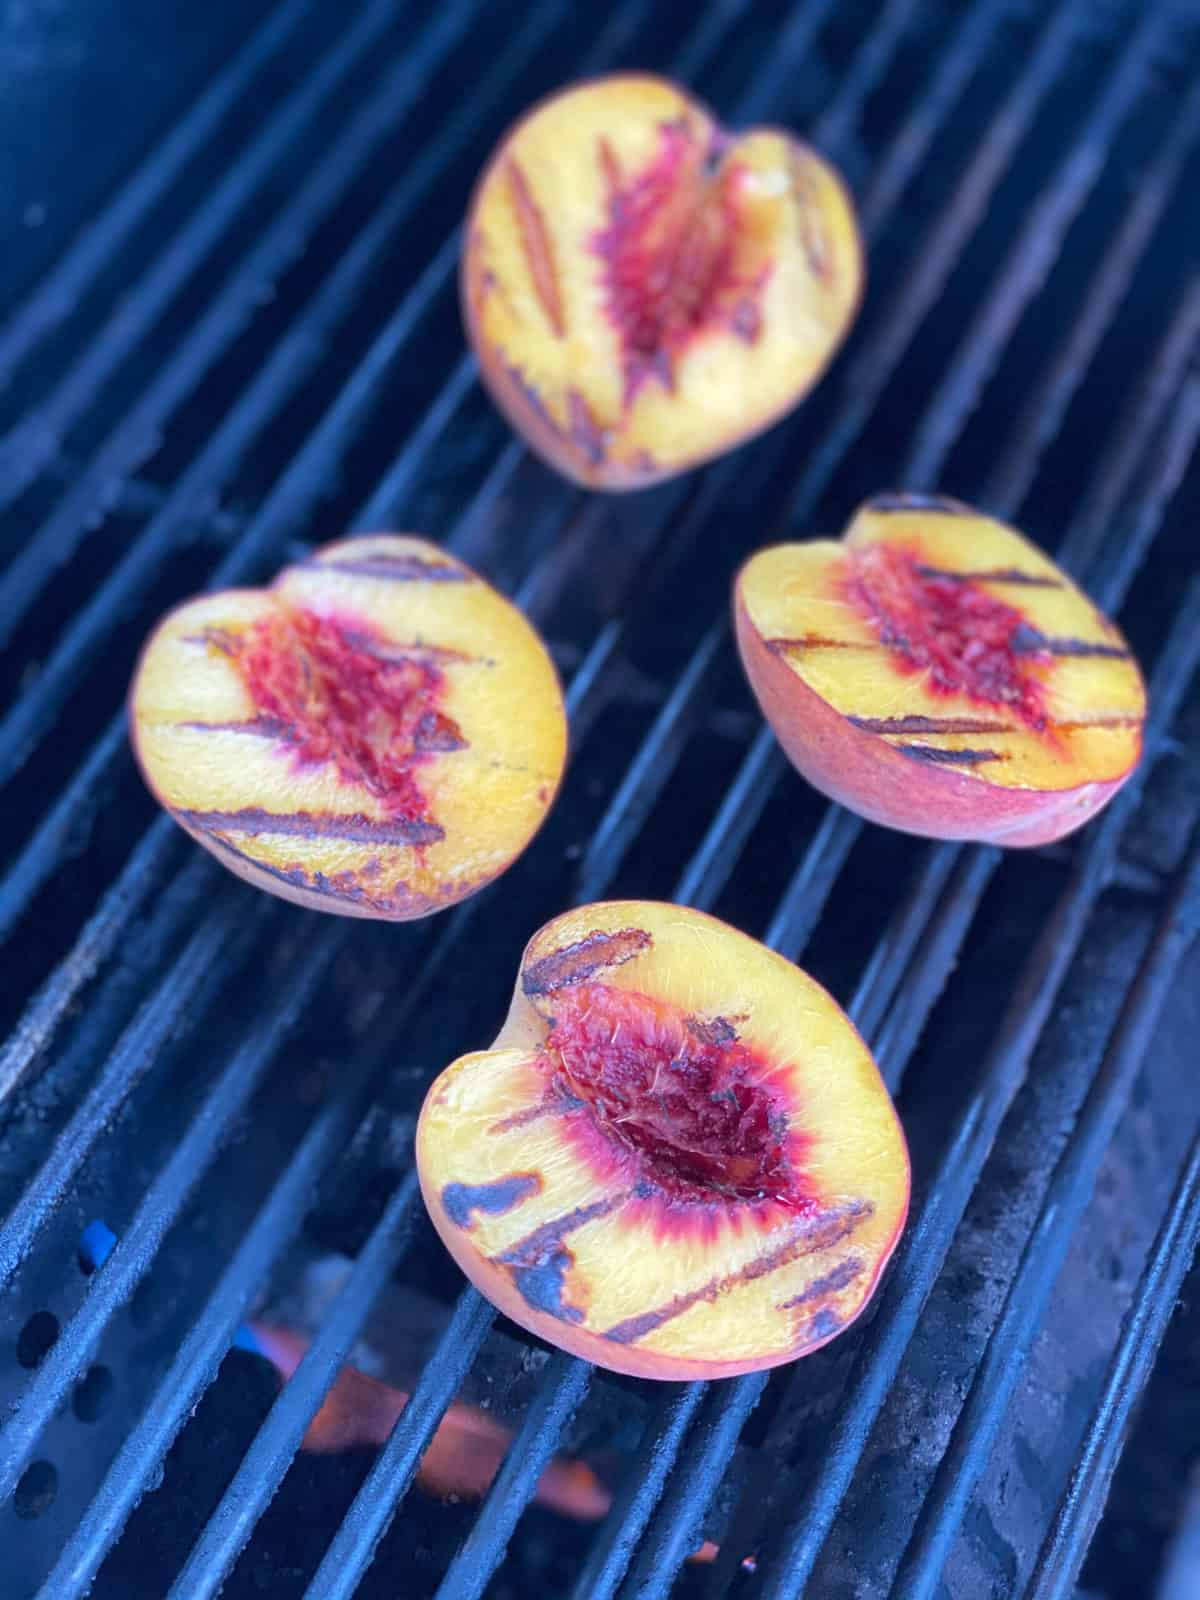 Four peaches with grill marks on grill grates with fire underneath them.